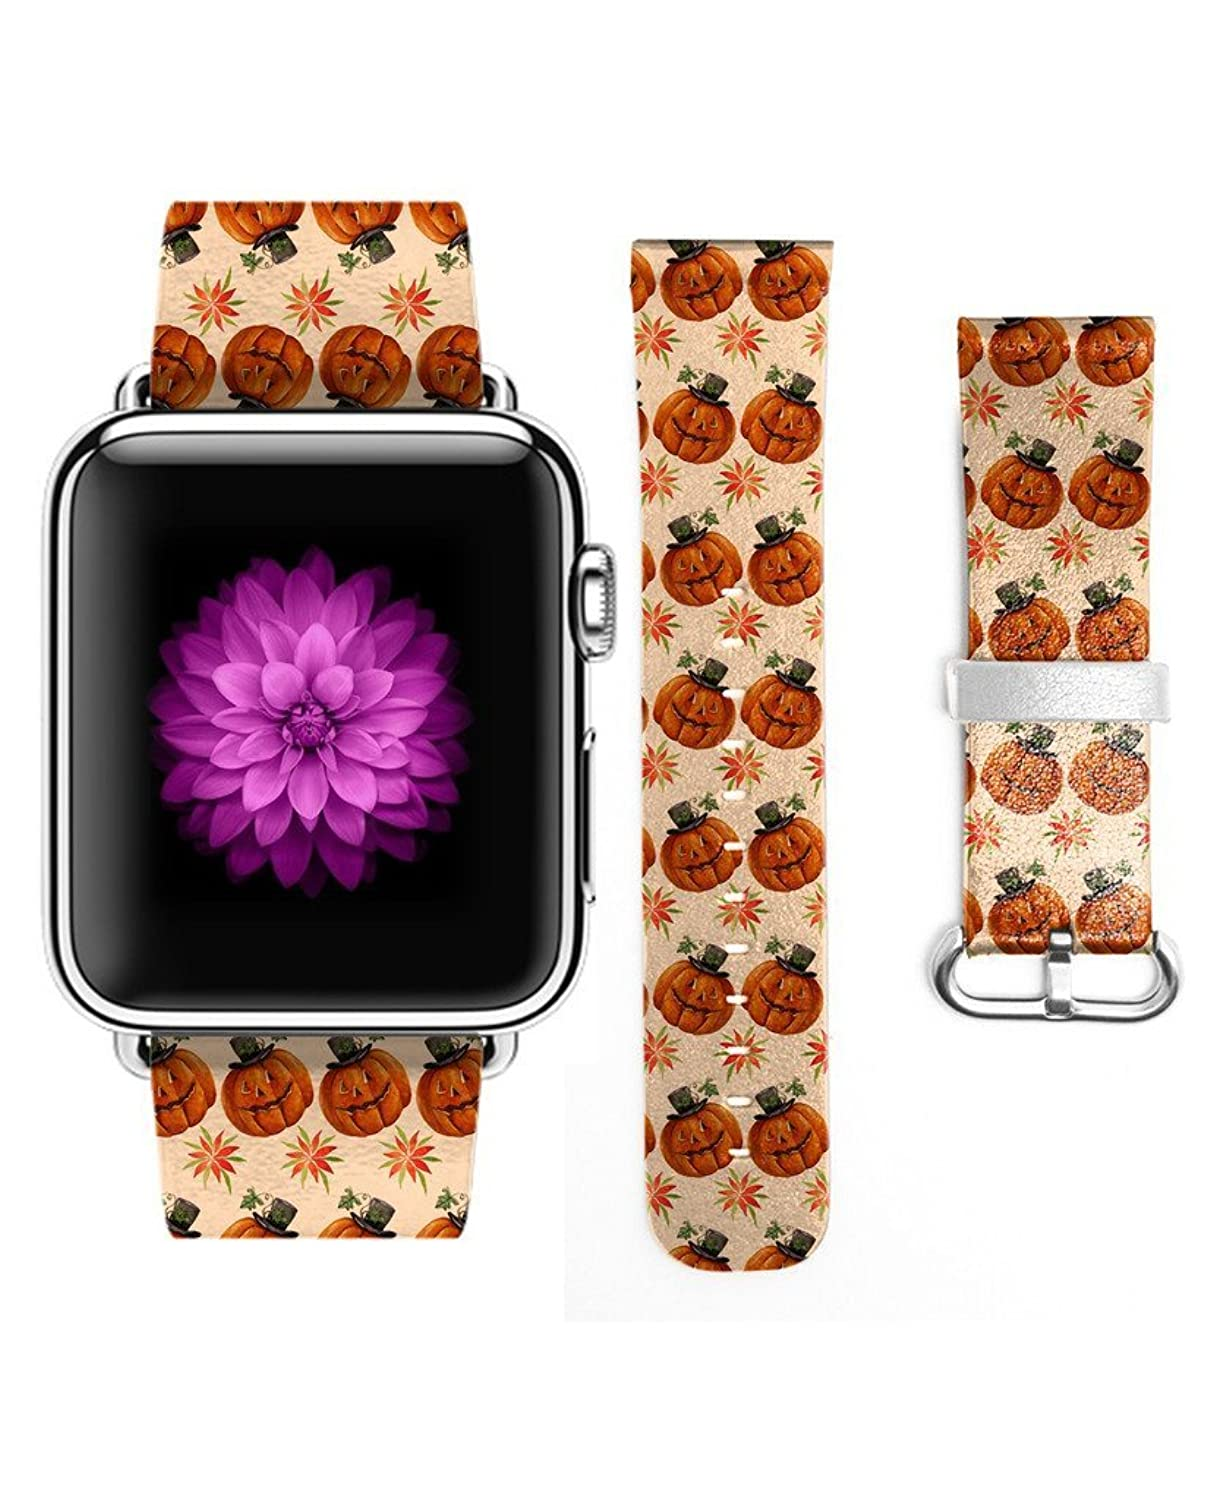 3C-LIFE Watch Band 38mm Women for Apple iWatch,Genuine Leather Strap Wrist Band Replacement for Apple Watch All Models 38mm-Halloween's Pumpkin